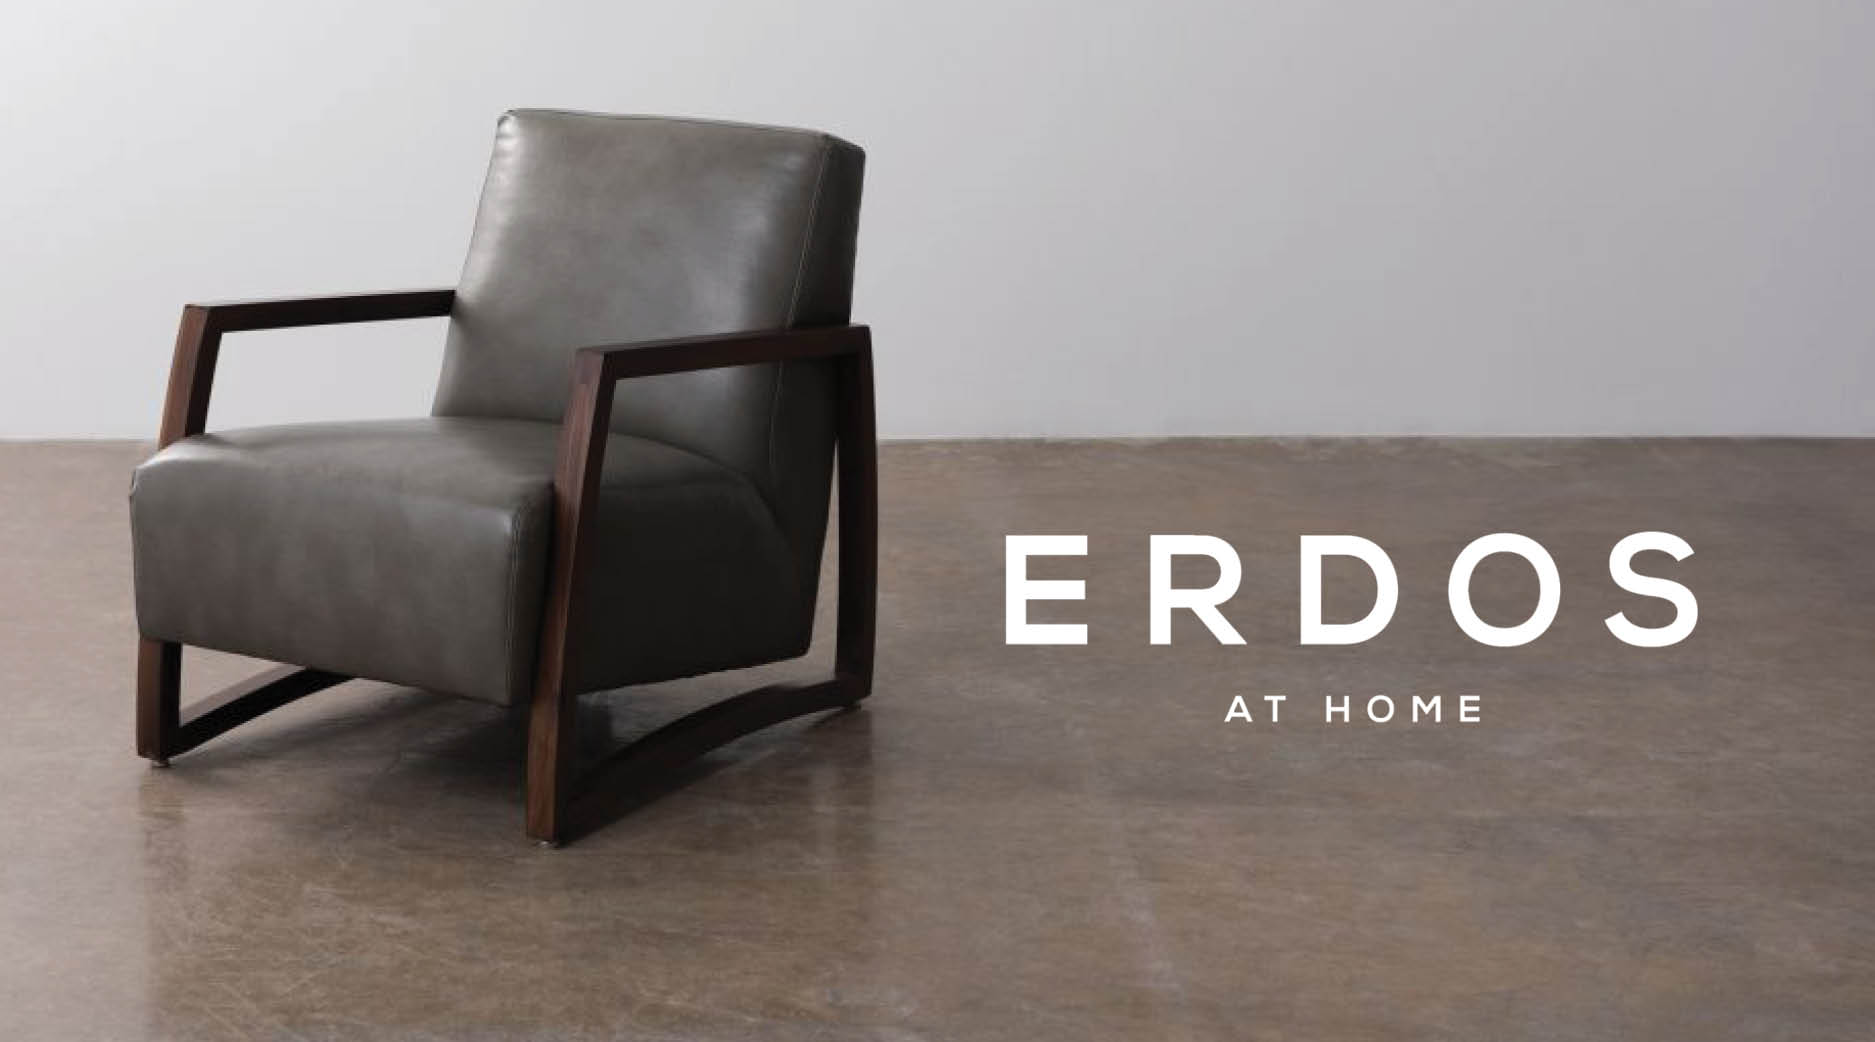 Erdos at Home shutting down